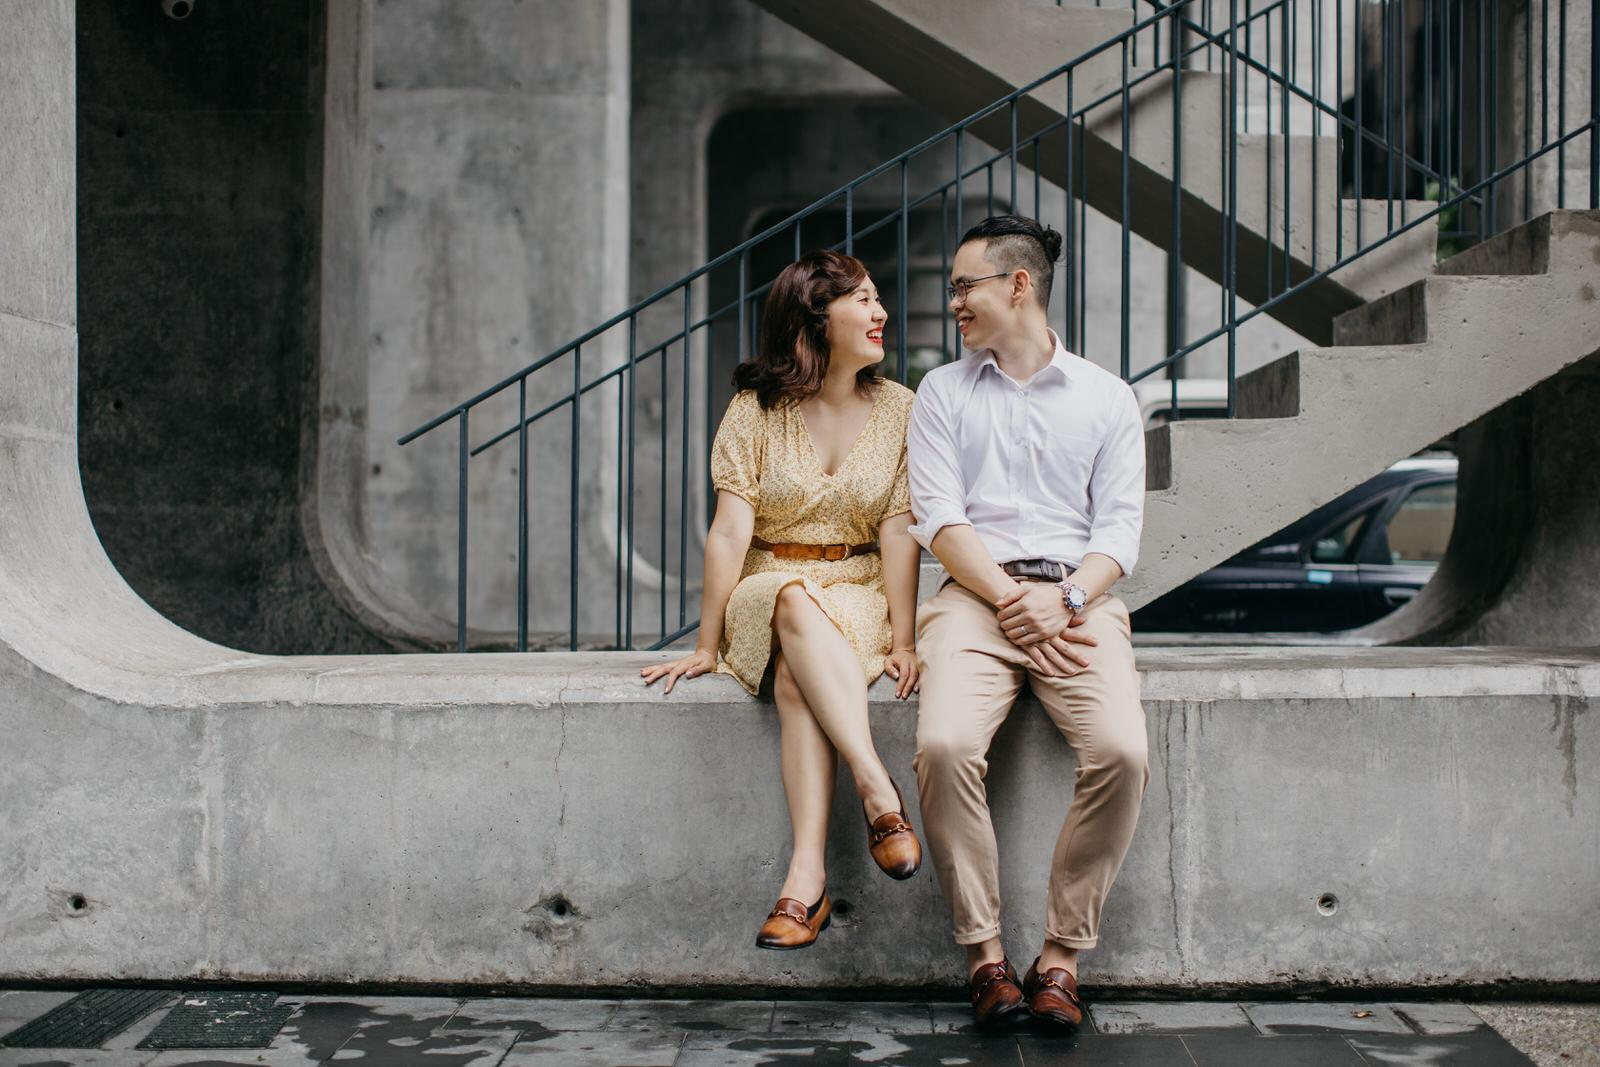 bubbly frisky Prewedding Putrajaya Love Portrait in the Beautiful Kuala Lumpur Cliff Choong Photography